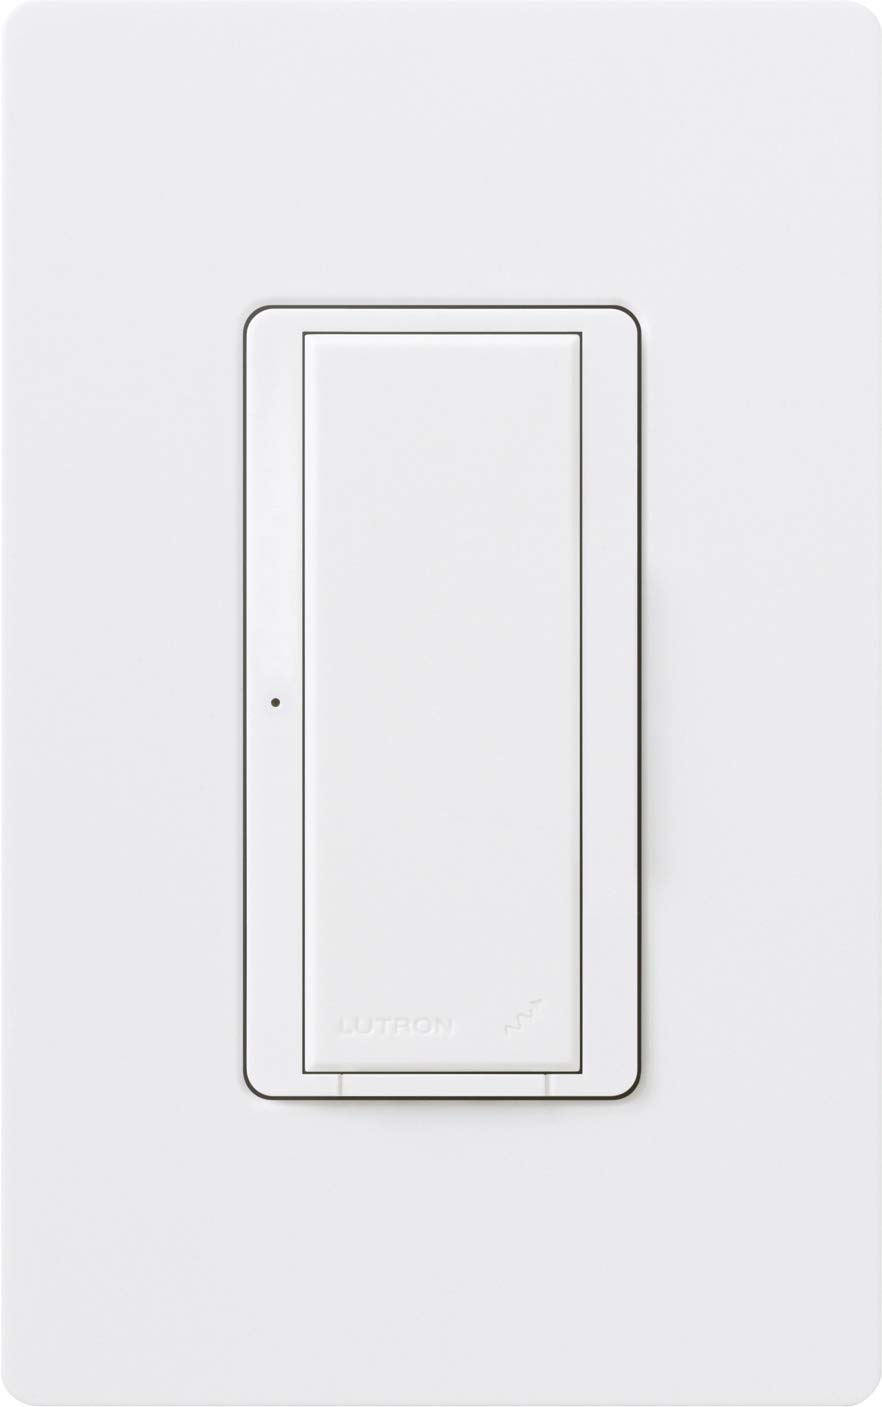 Amazon.com: Lutron RRD-8ANS-WH 120 Volt AC 1-Pole Electronic Dimmer Switch White: Electronics